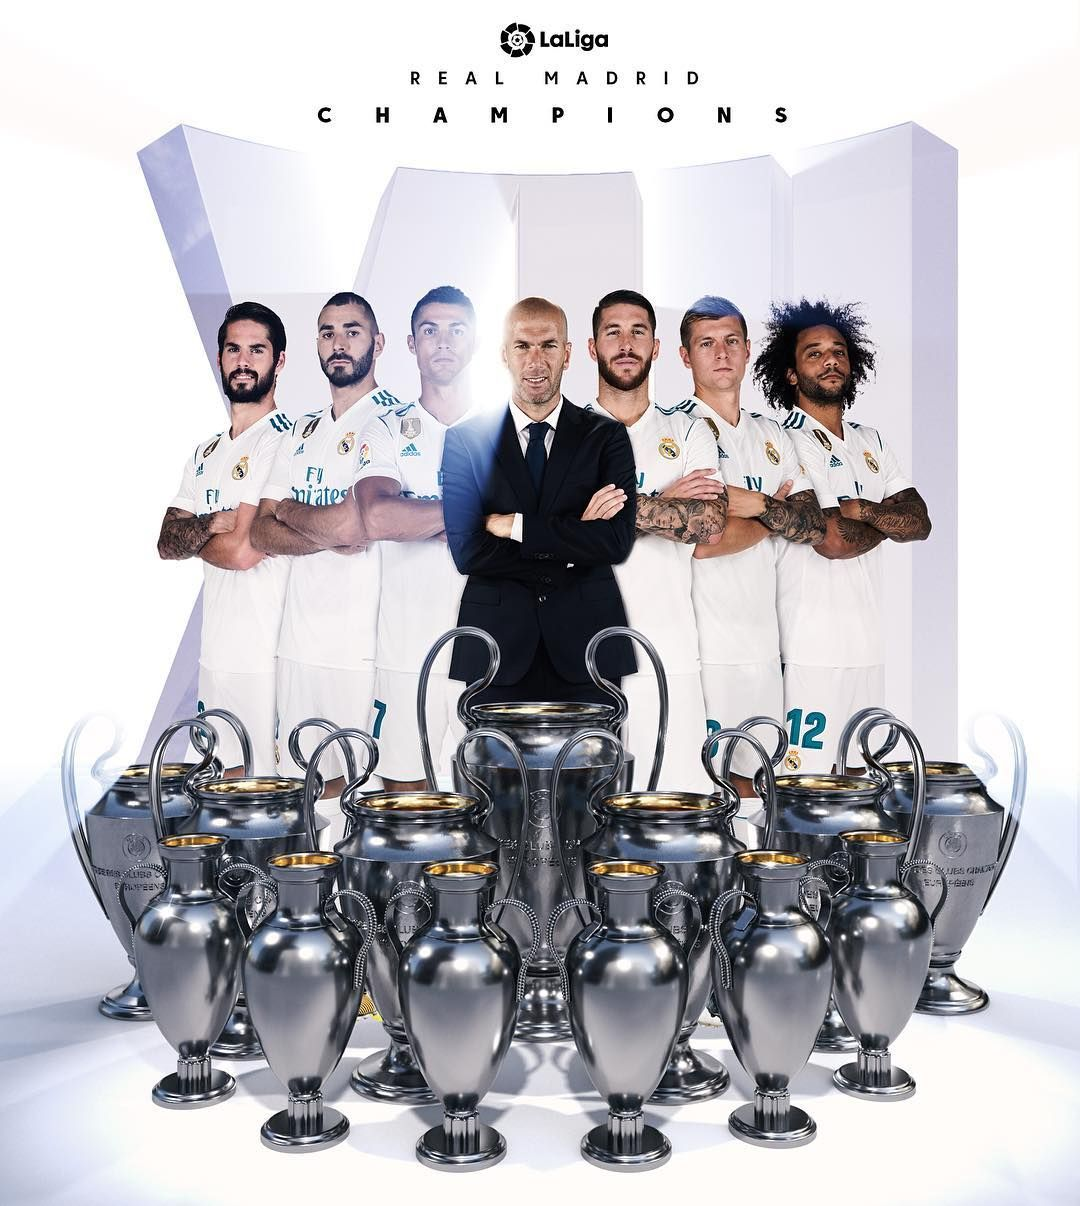 Realmadrid Win Their 1 3 Th Champions League Title Congratulations Realmadrid Uclfinal History Fo Real Madrid Team Real Madrid Club Champions League